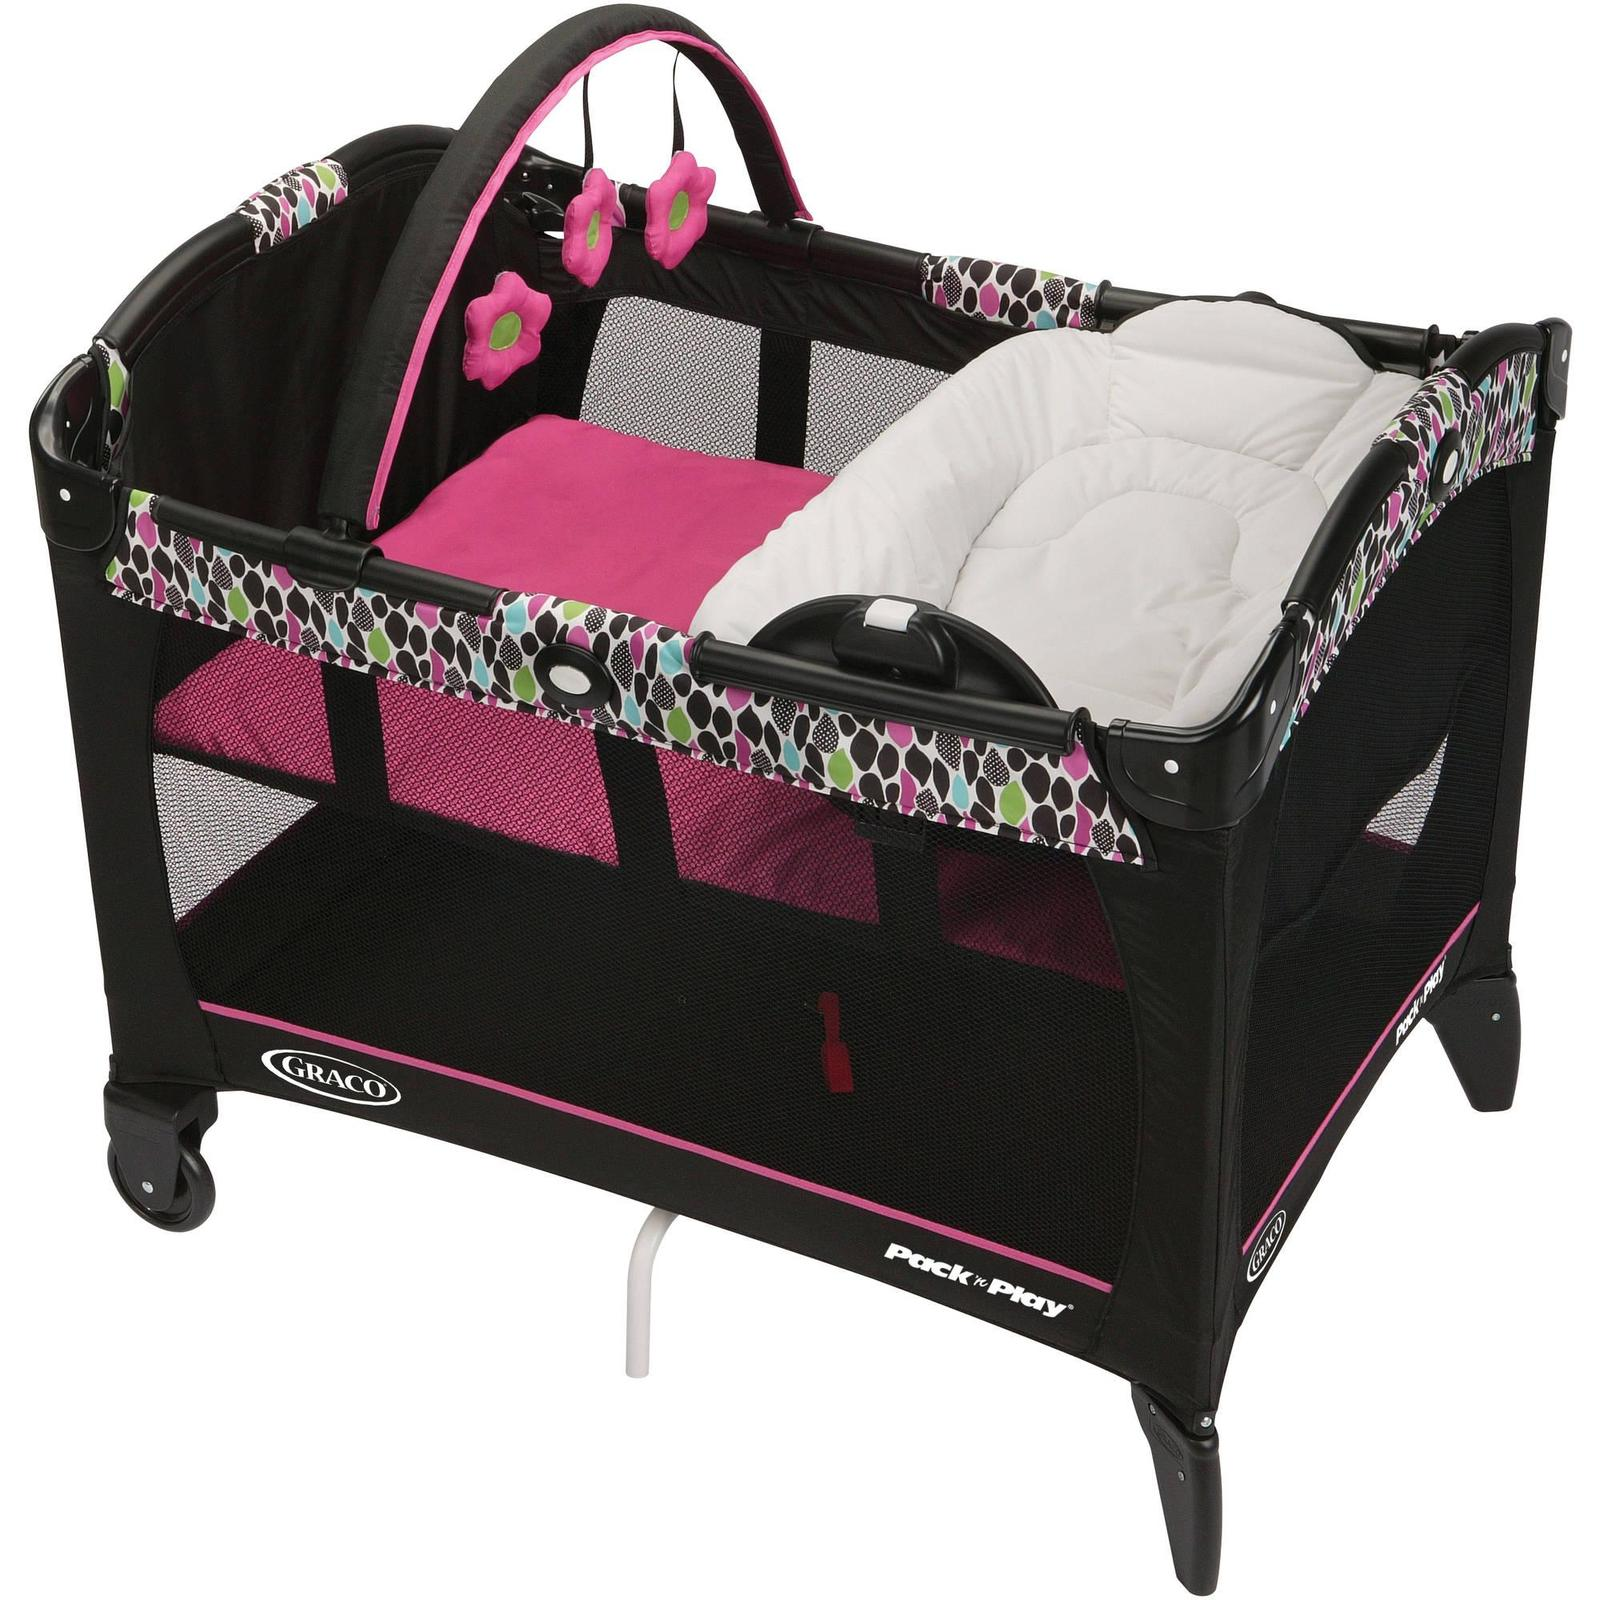 Graco baby portable play yard maci